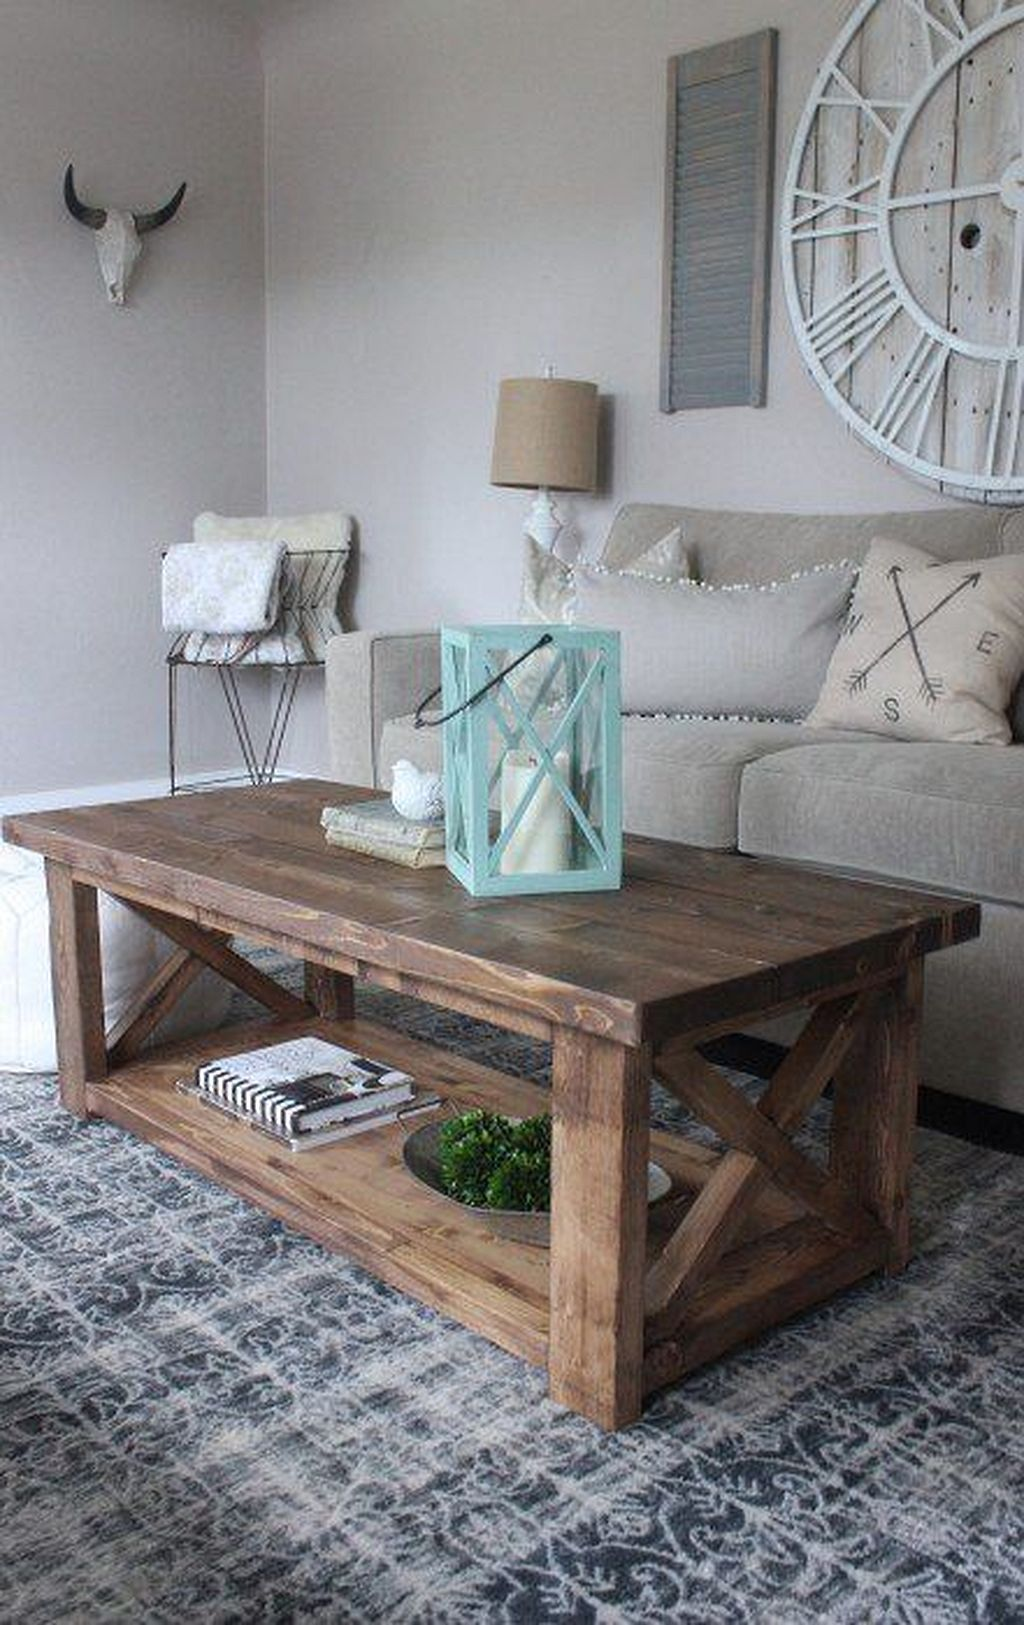 Diy Coffee Table Ideas You Should Try To Make9 In 2018 Woodworking